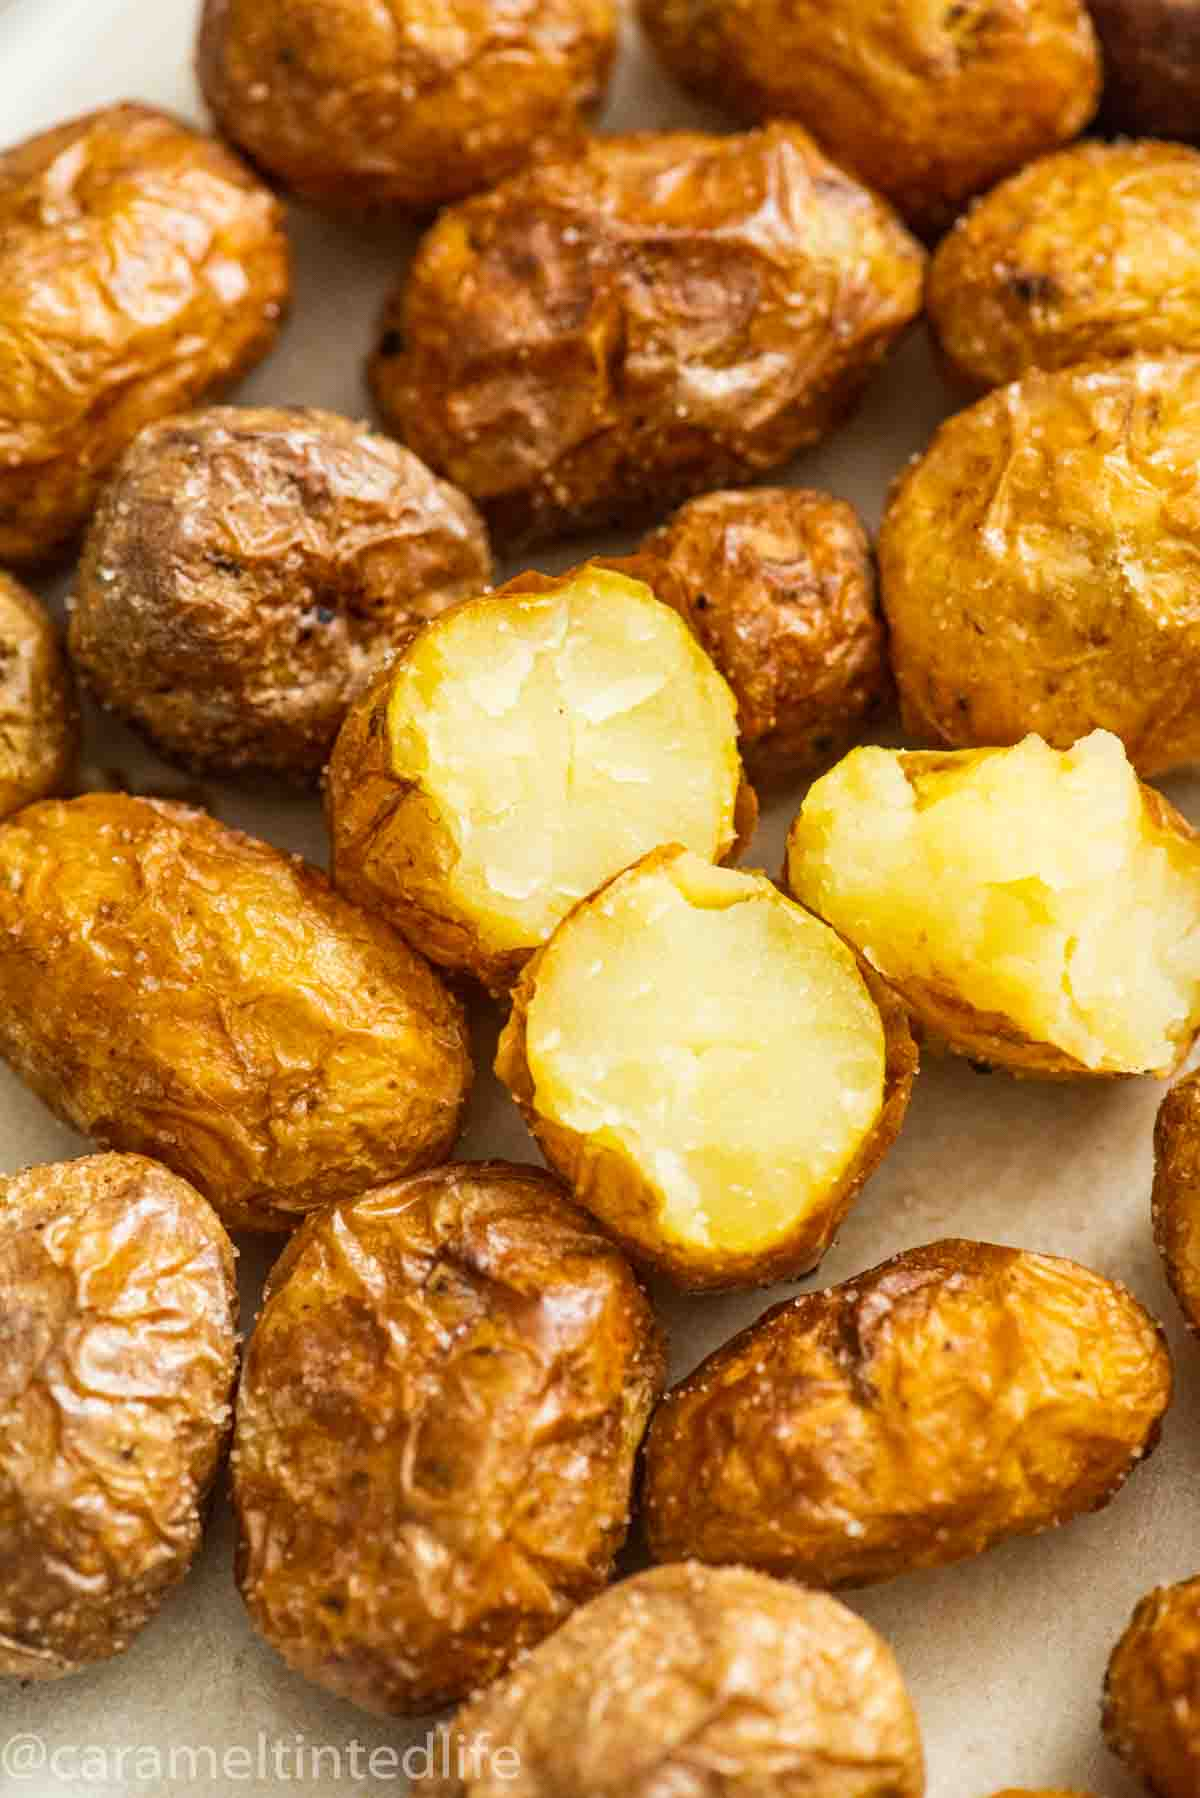 roasted baby potatoes on a plate